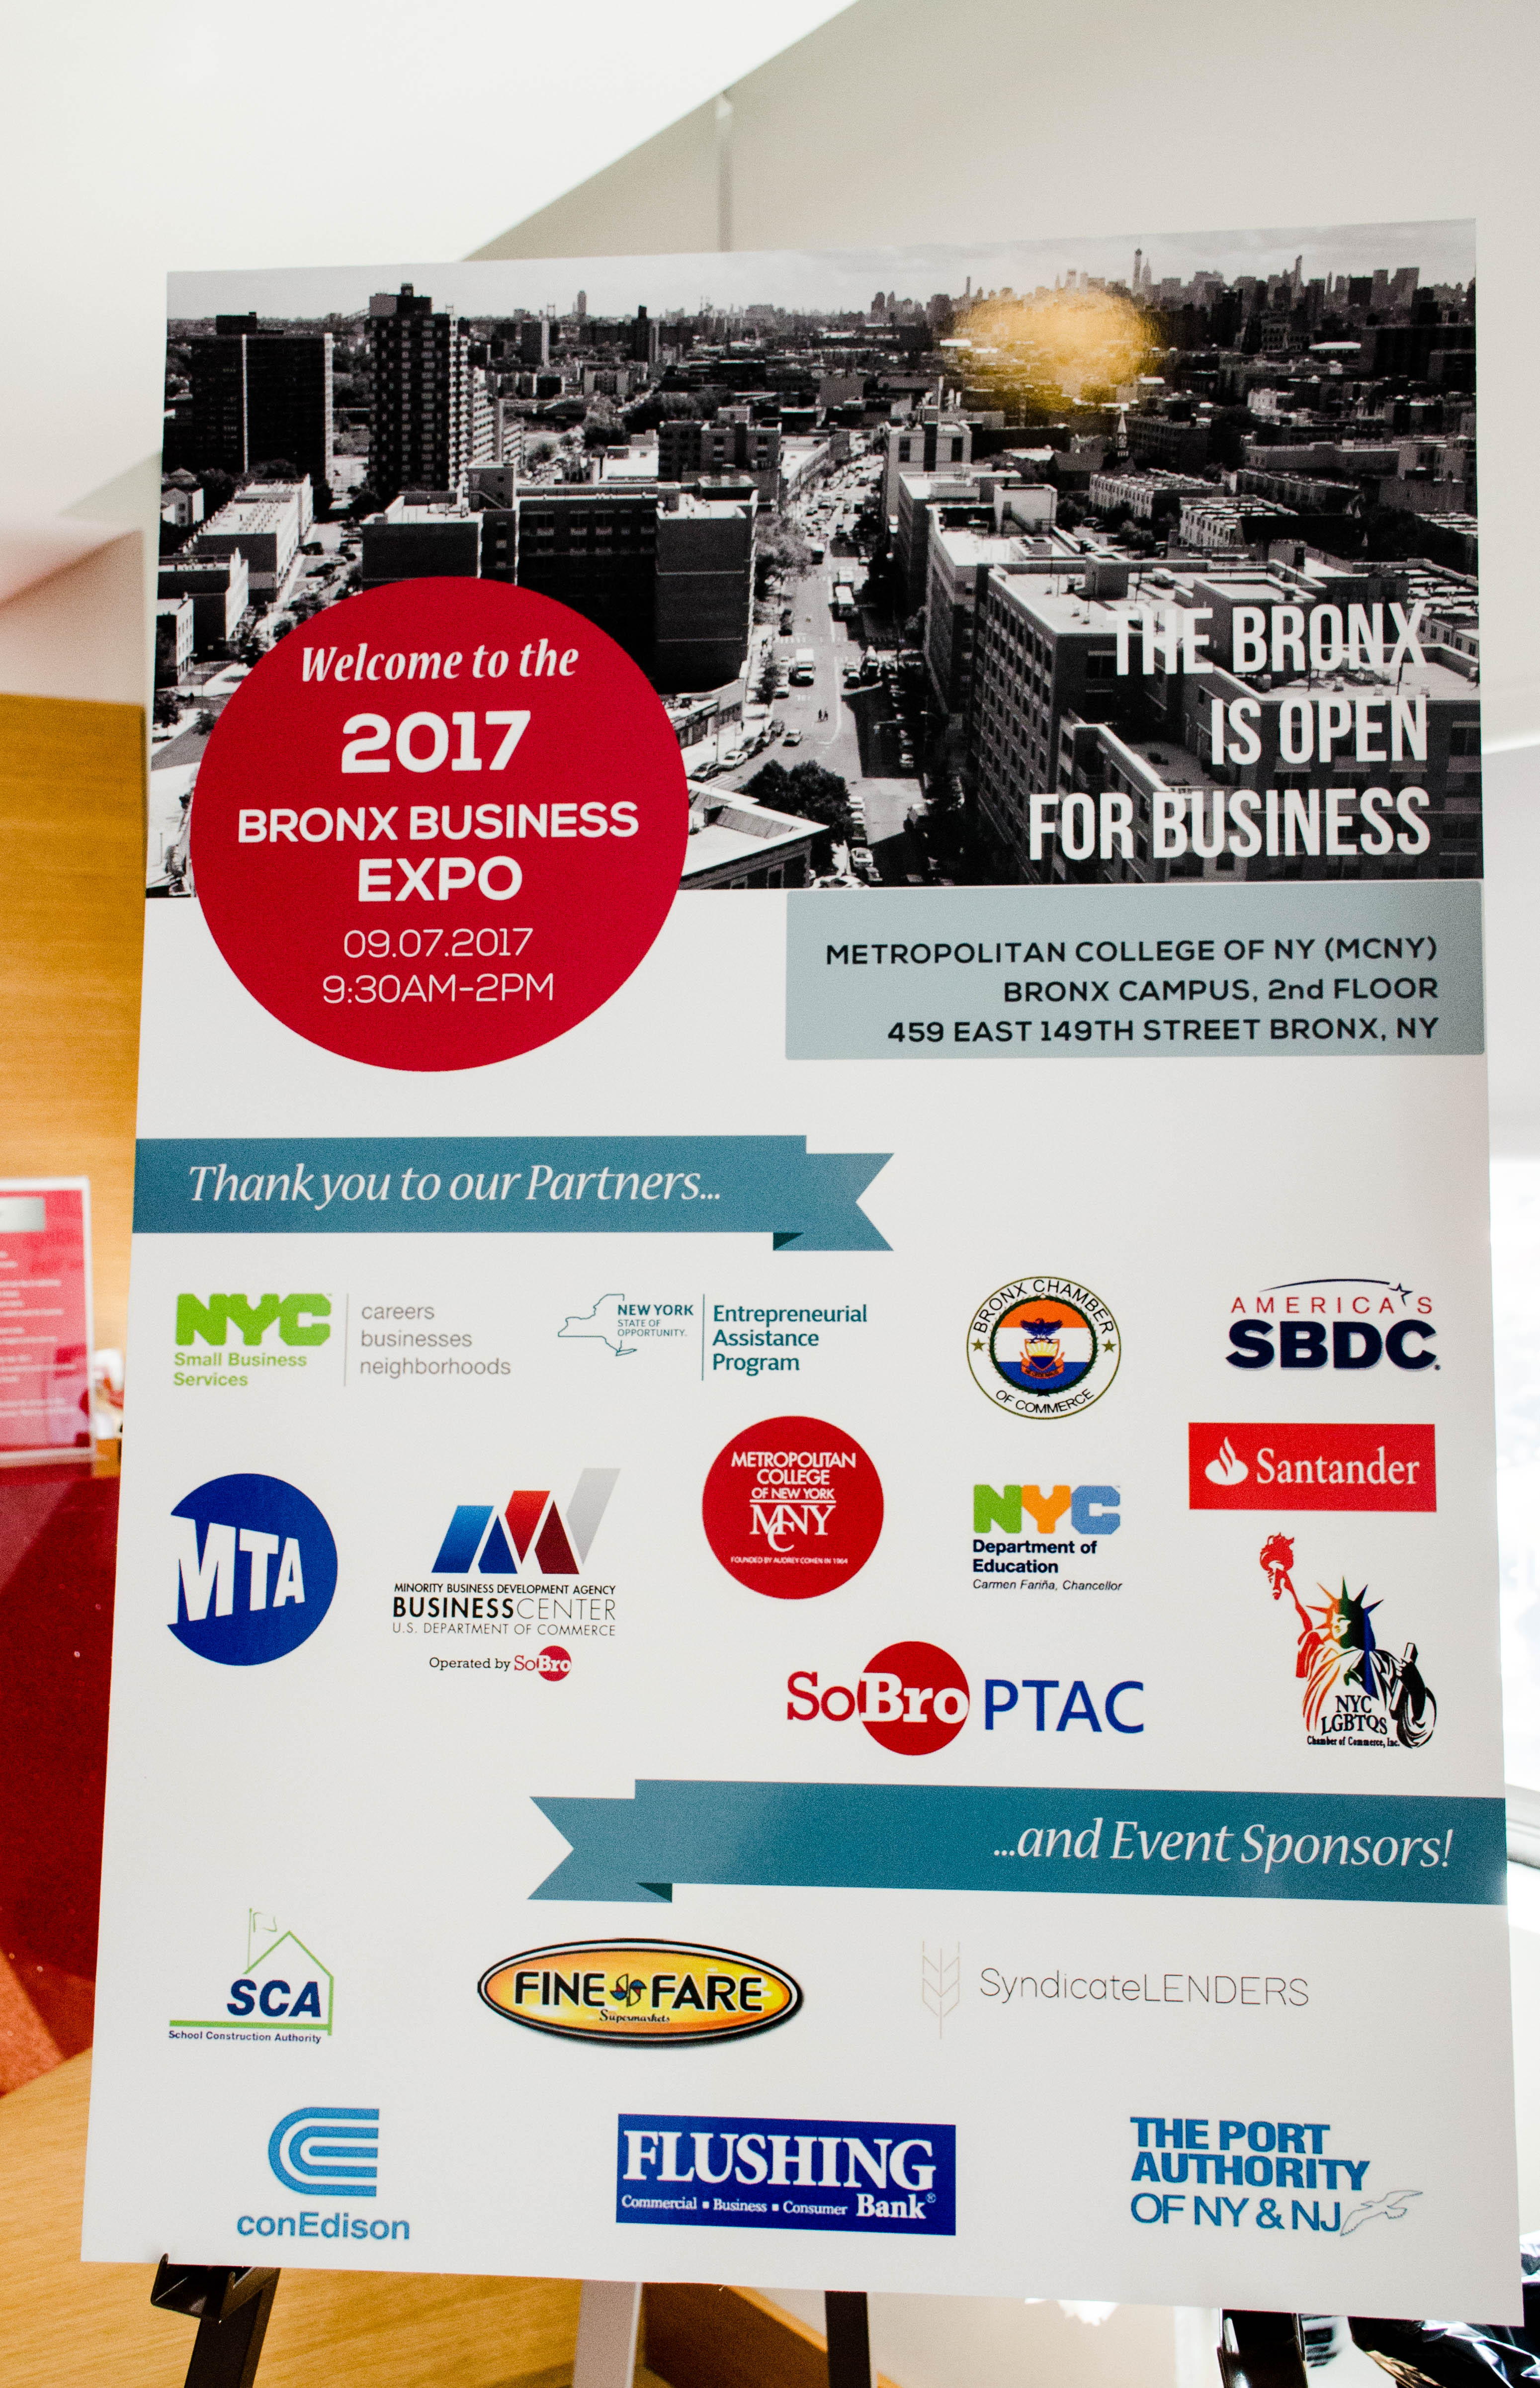 Partners and event sponsors